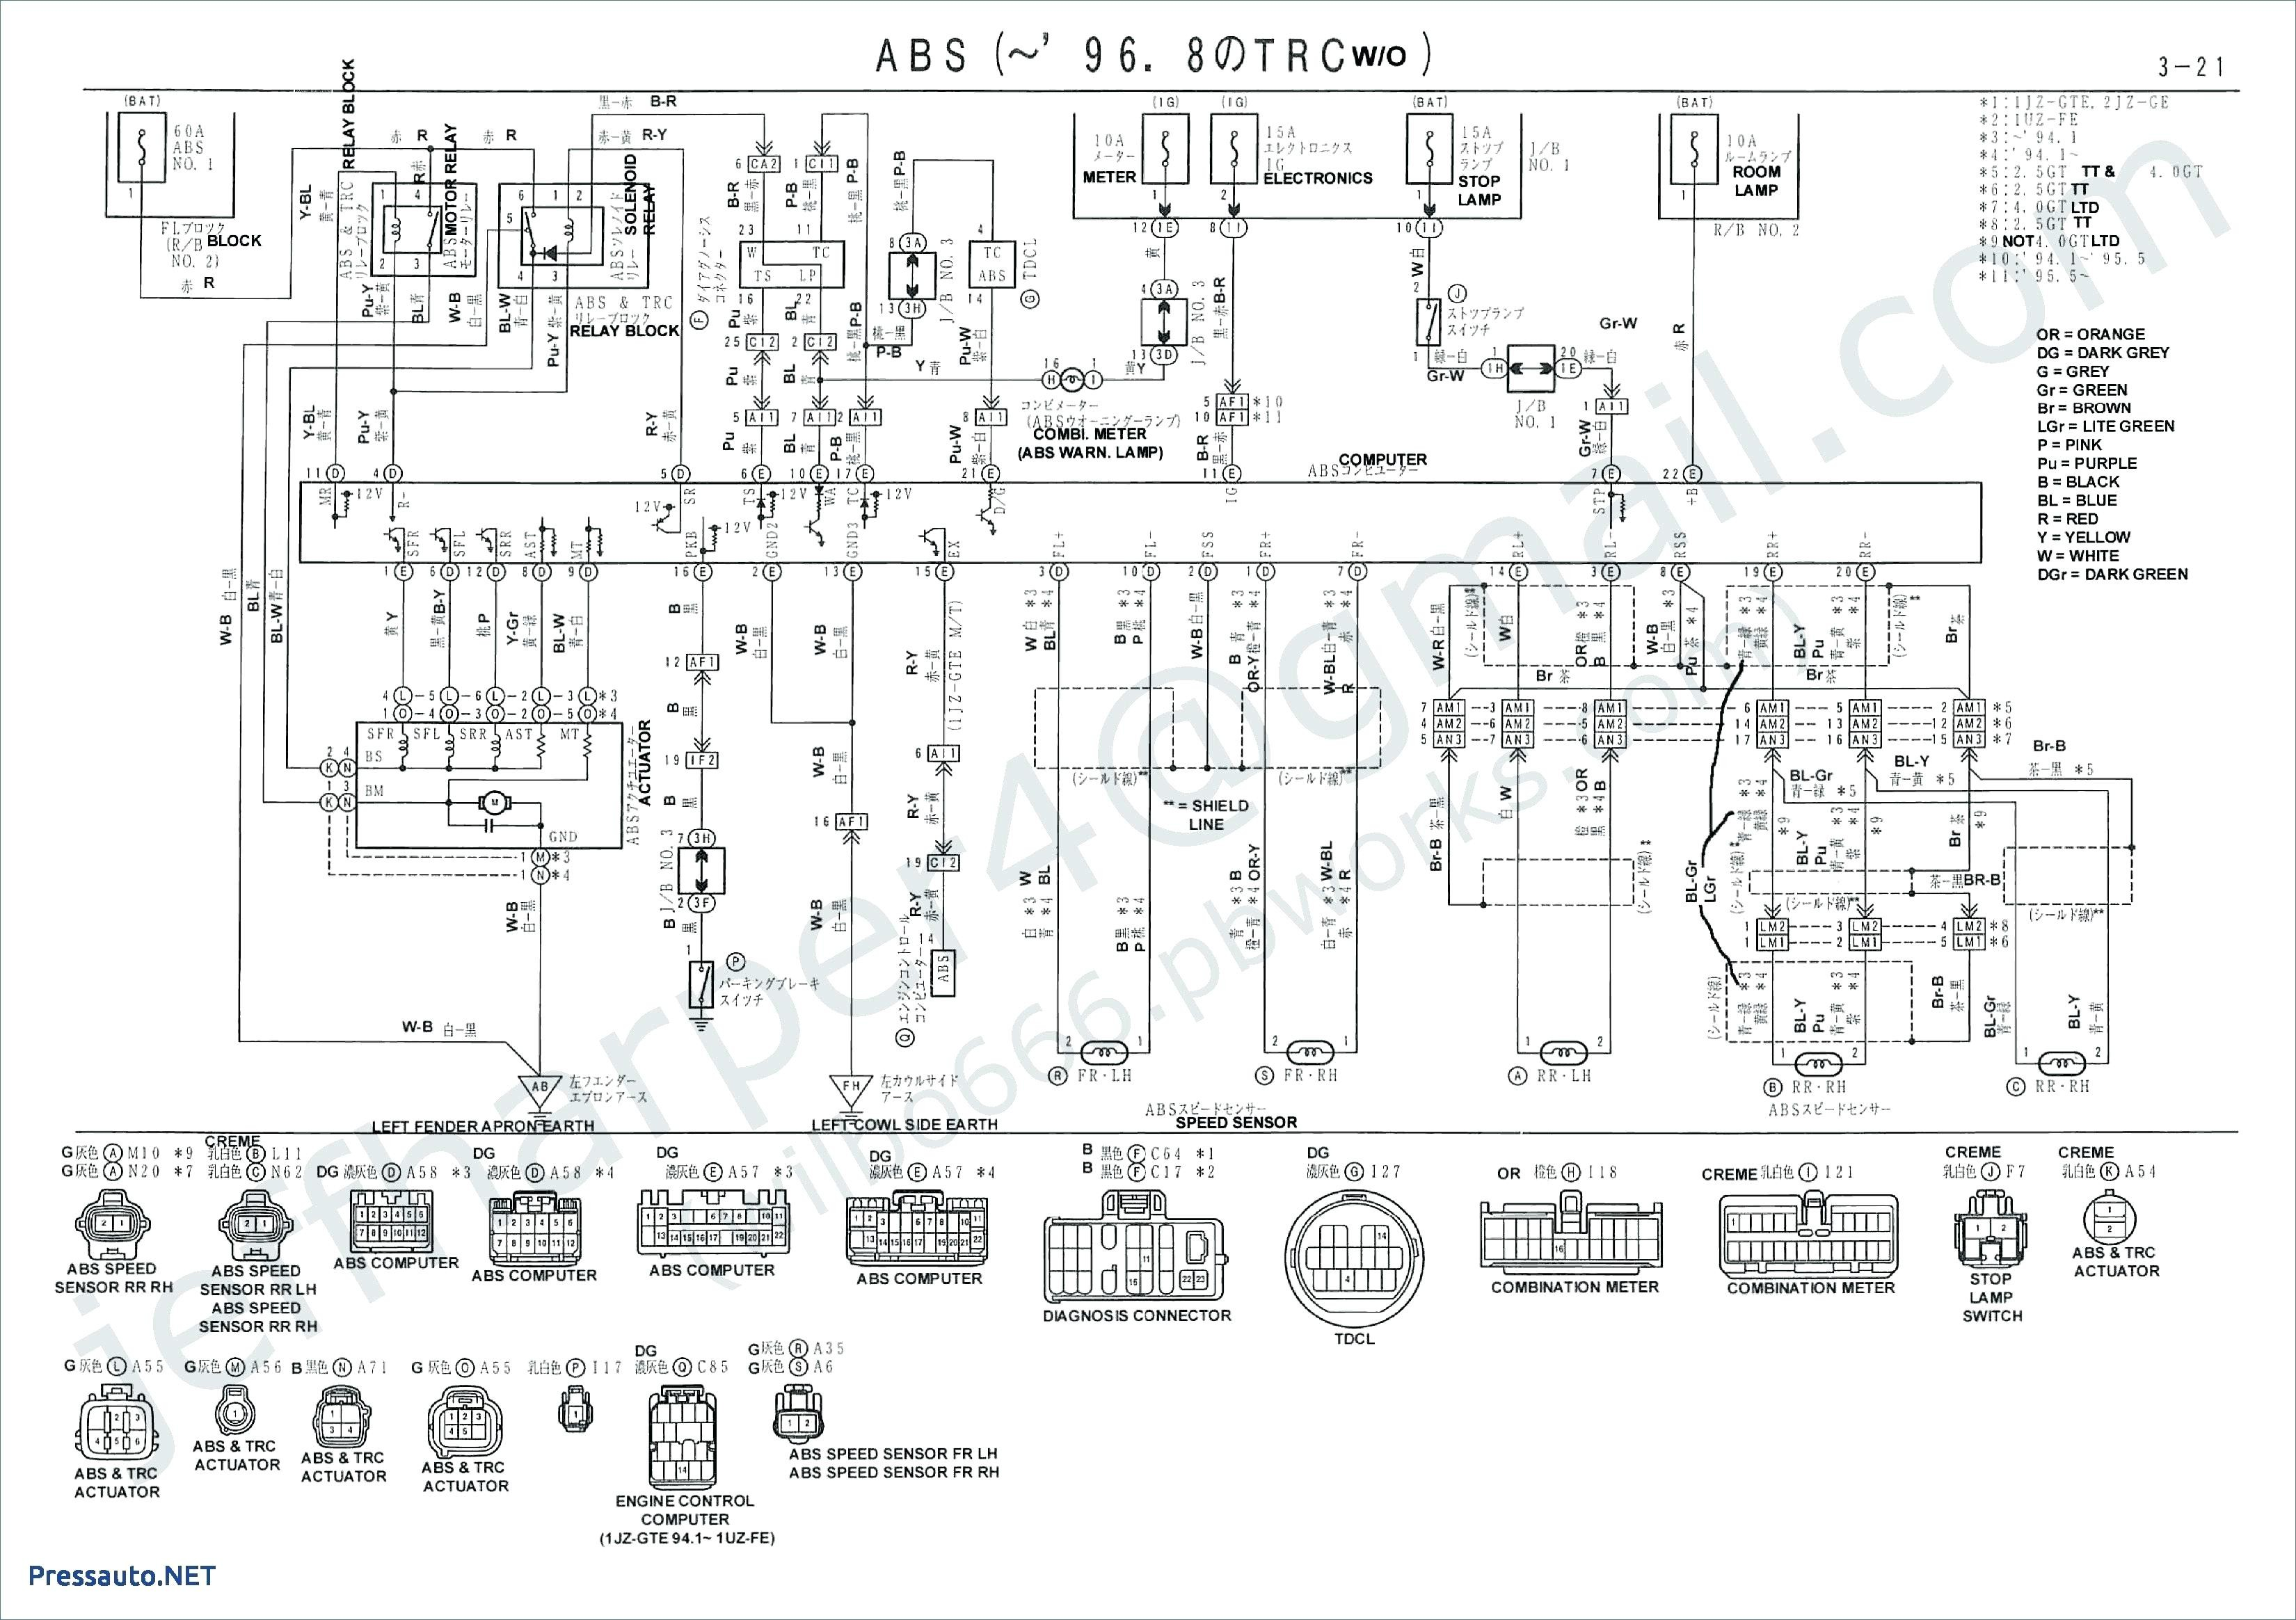 Dodge Stratus Wiring Diagram 2006 Dodge Ram 3500 Trailer Wiring Diagram Pretty How to Wire Brake Of Dodge Stratus Wiring Diagram